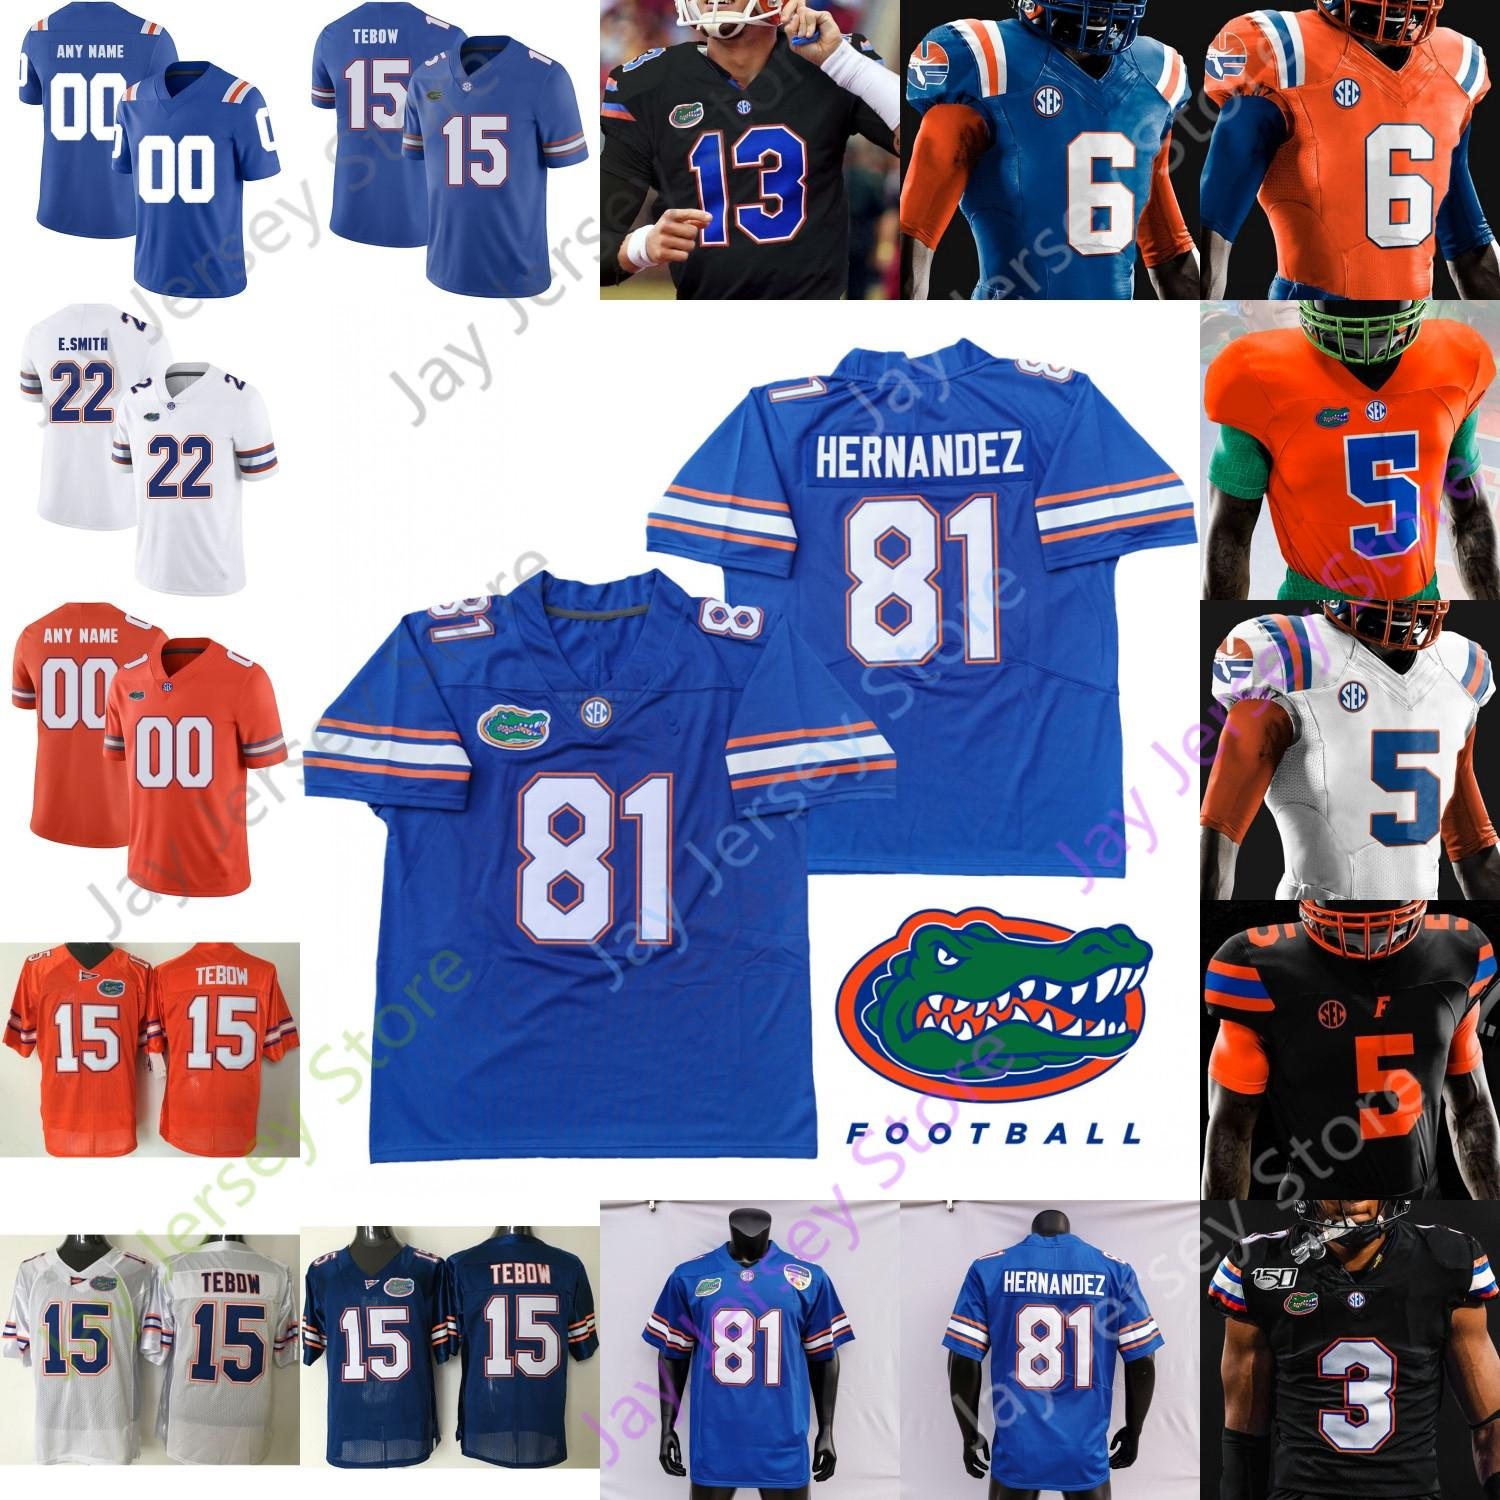 Florida Gators Football Jersey NCAA College Aaron Hernandez Tim Tebow Emmitt Smith Kyle Trask Feleipe Franchi Perine Pierce Jefferson Pitts